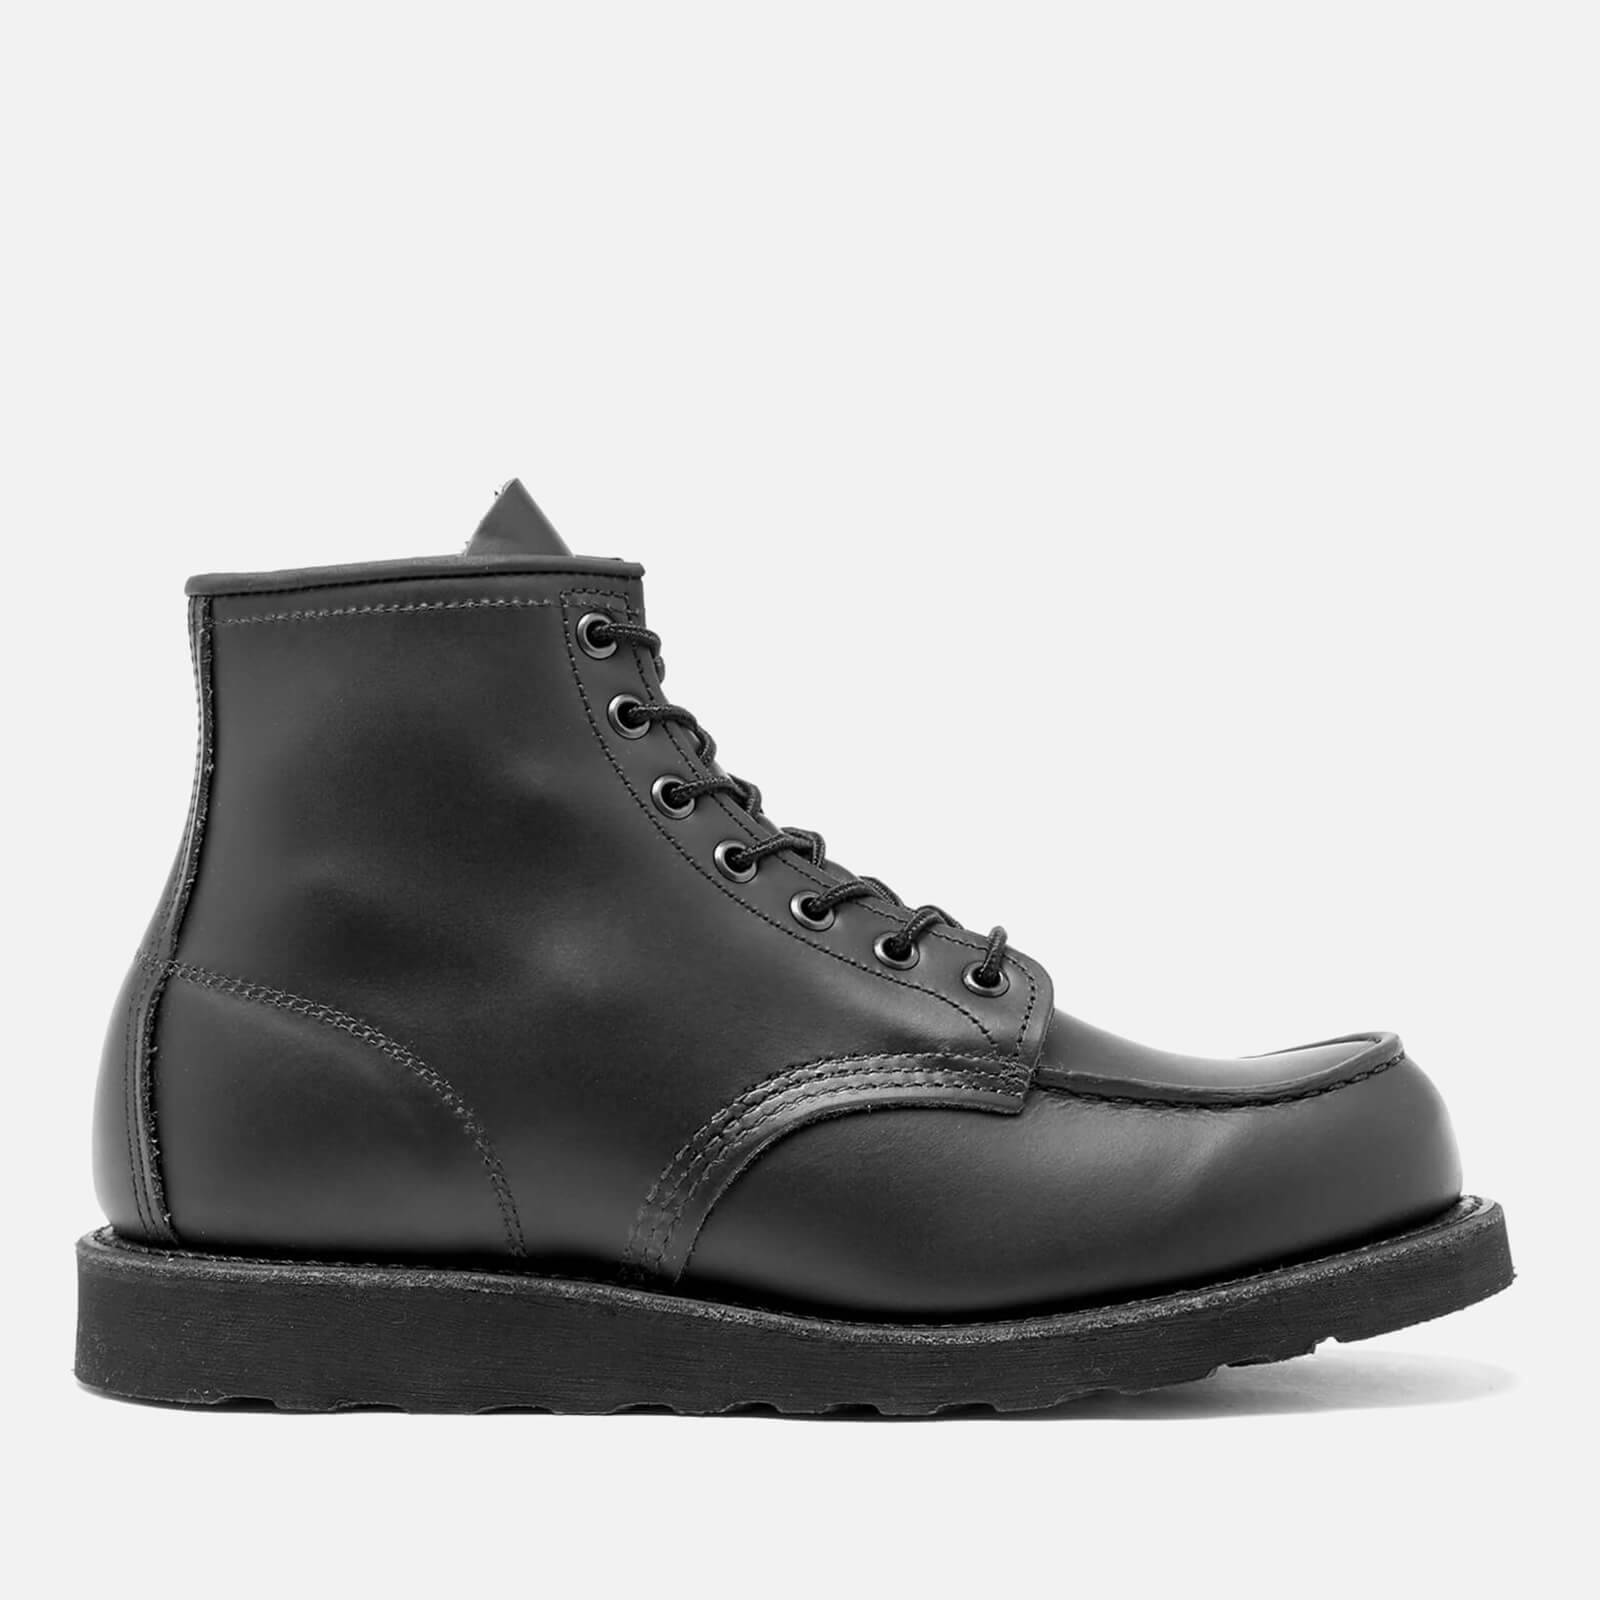 Red Wing Men's 6 Inch Moc Toe Leather Lace Up Boots - Black Chrome - UK 11/US 12